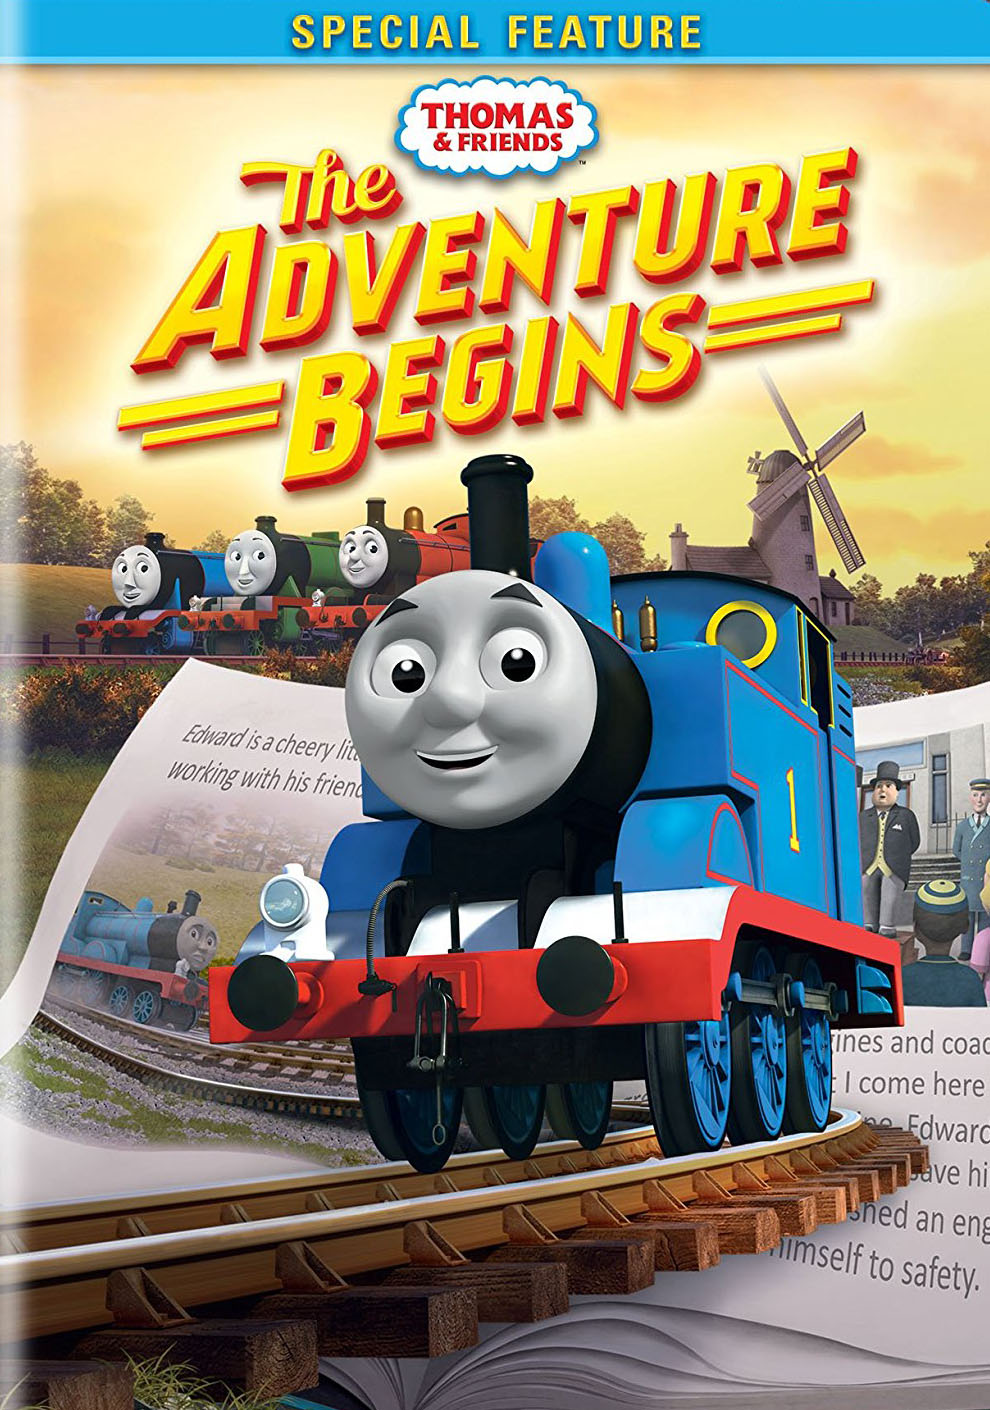 The Adventure Begins Thomas The Tank Engine Wikia Fandom Powered